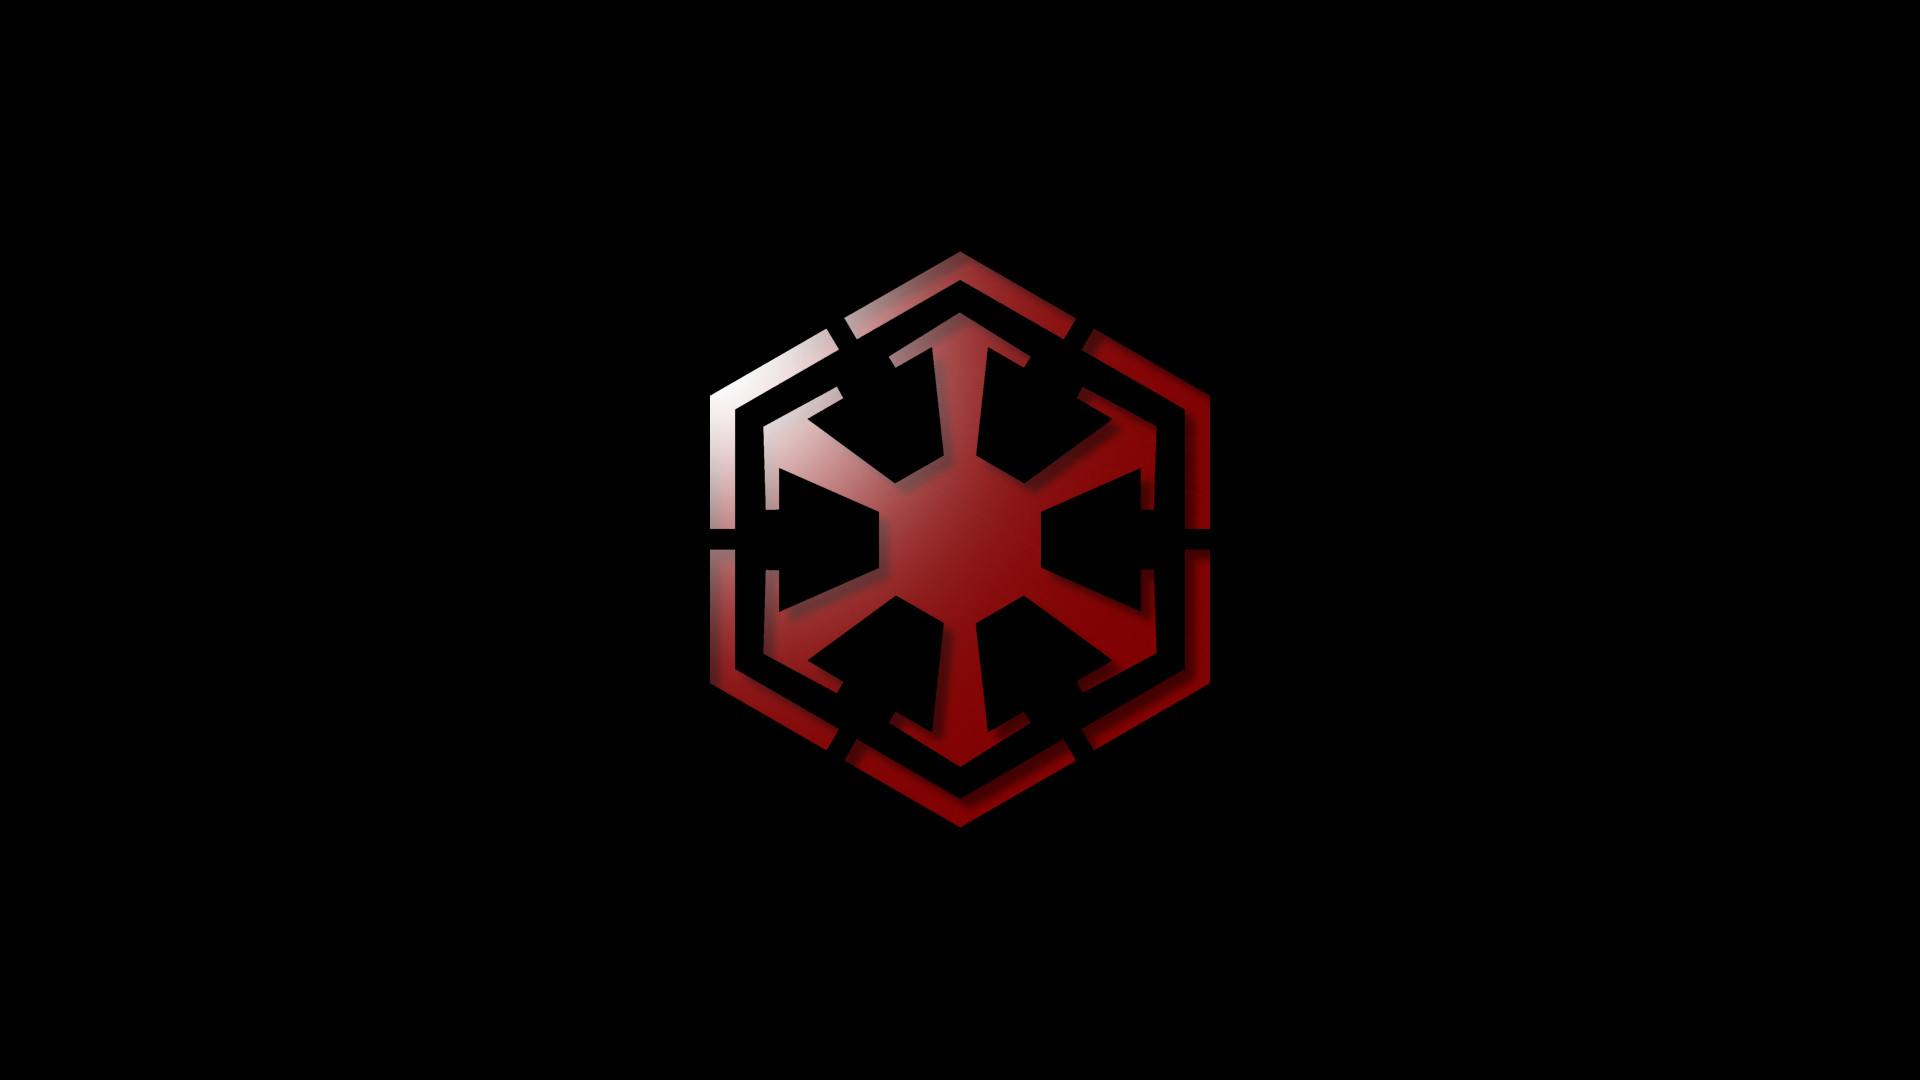 … The Simple SWTOR Sith Wallpaper by DistantWanderer